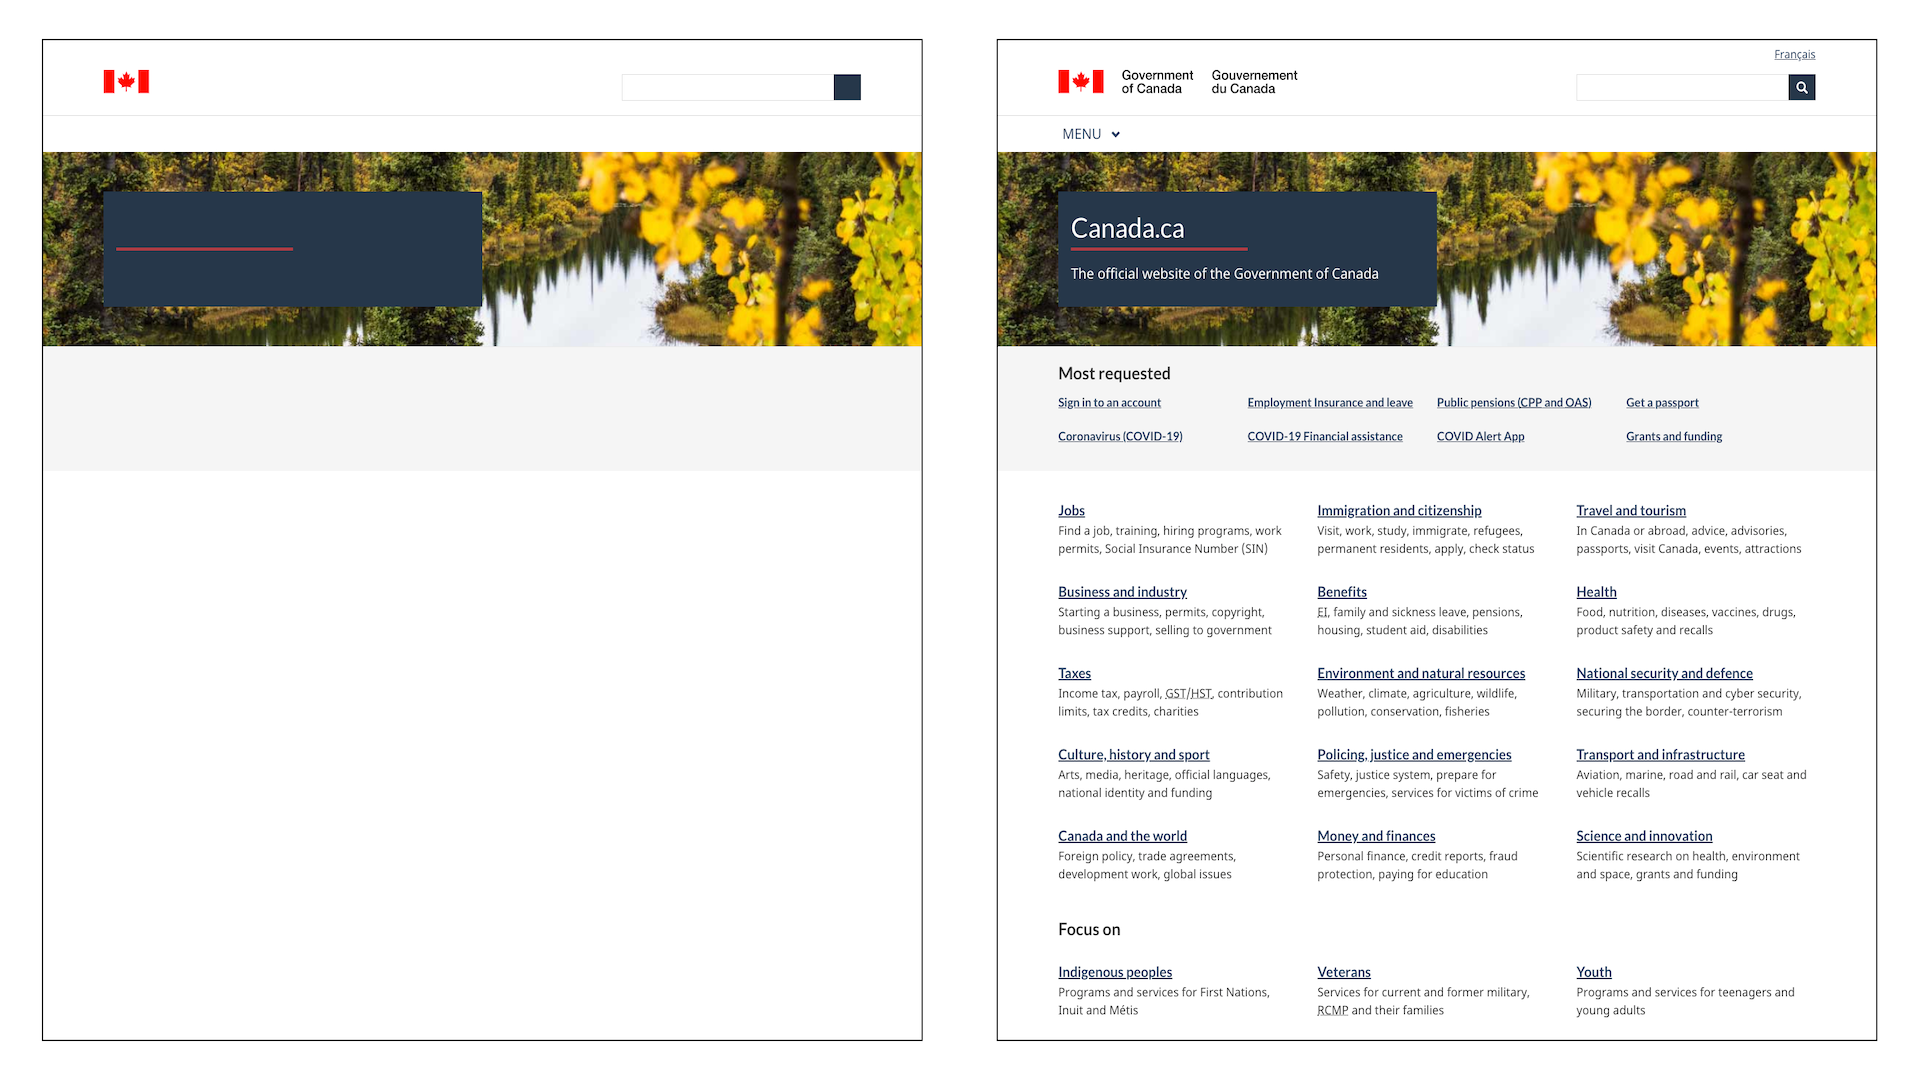 Side by side views of the Government of Canada website, one without text and one with text.